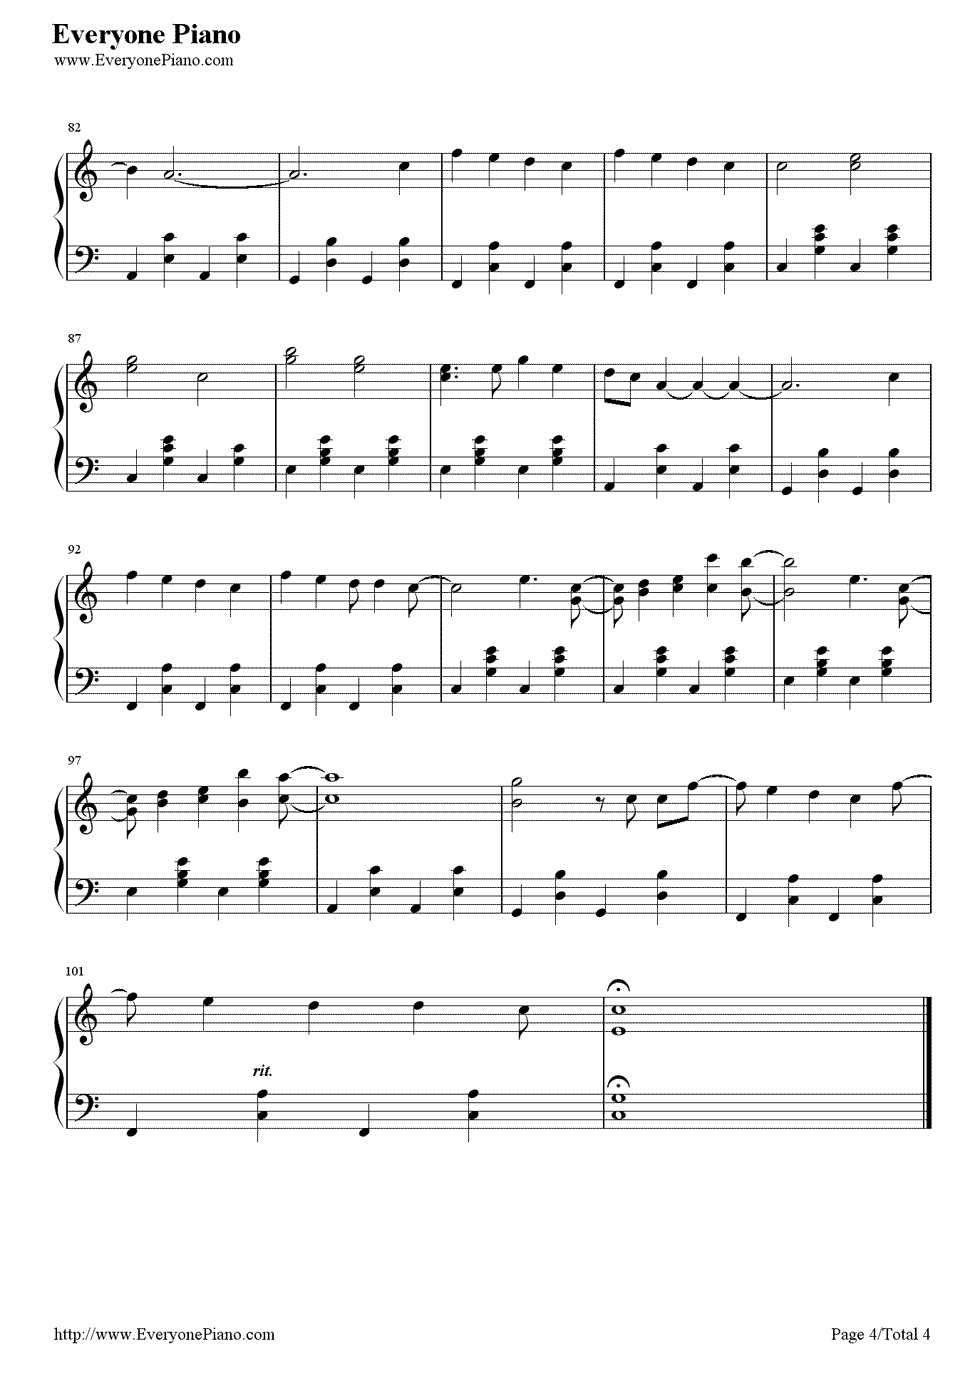 Count on me bruno mars stave preview 4 free piano sheet music listen now print sheet count on me bruno mars stave preview 4 hexwebz Image collections